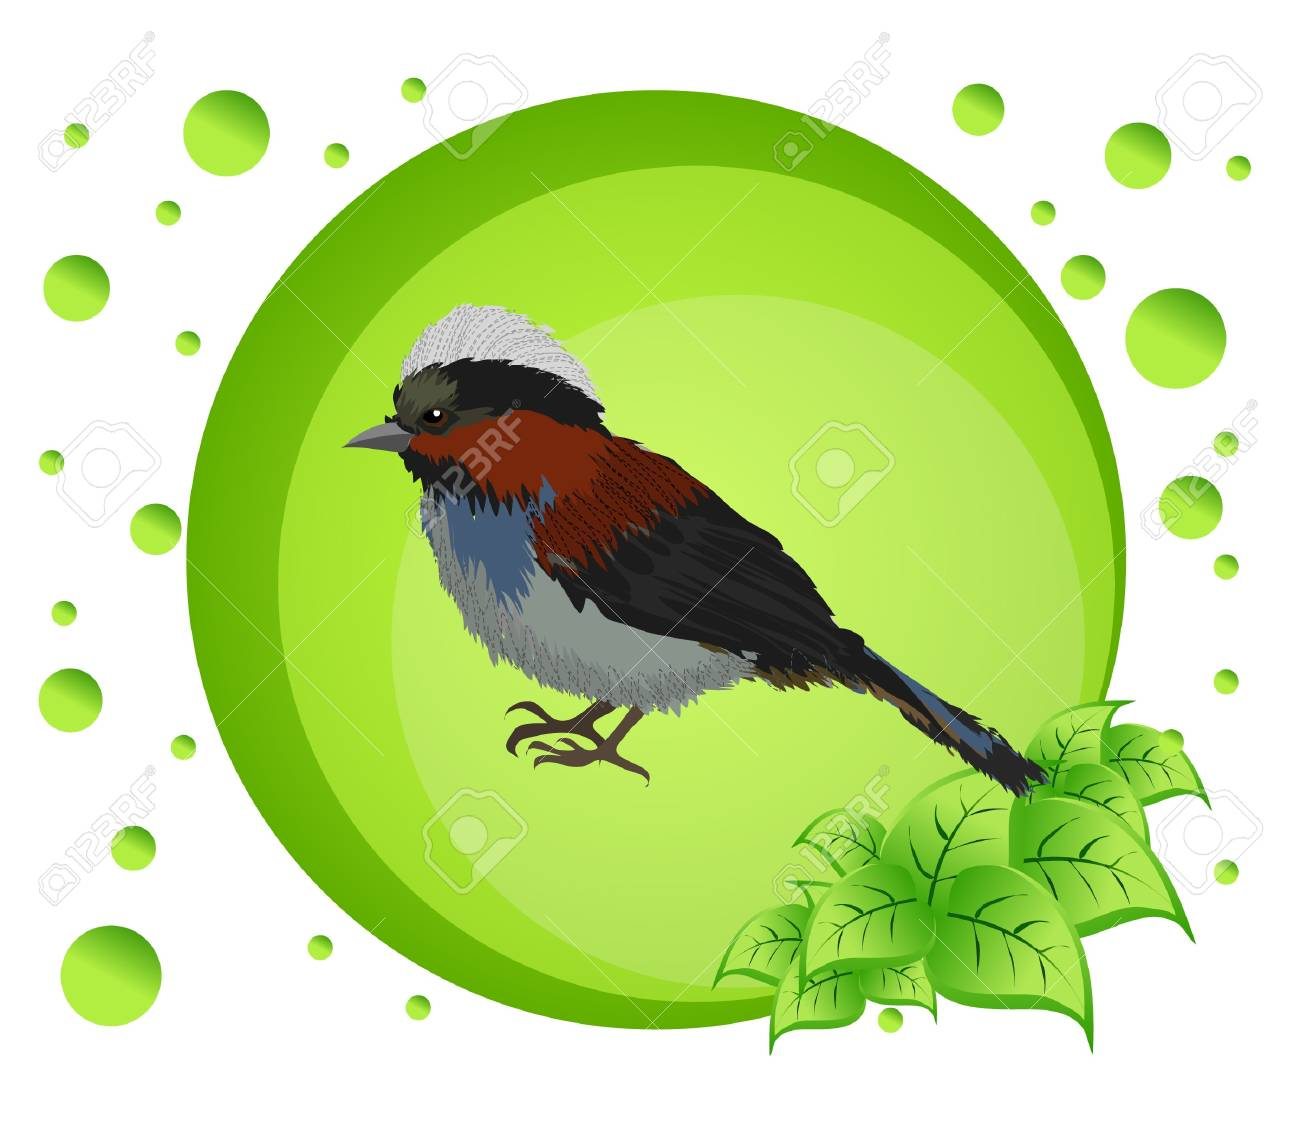 Vector illustration of a bird on colorful background Stock Vector - 17102918